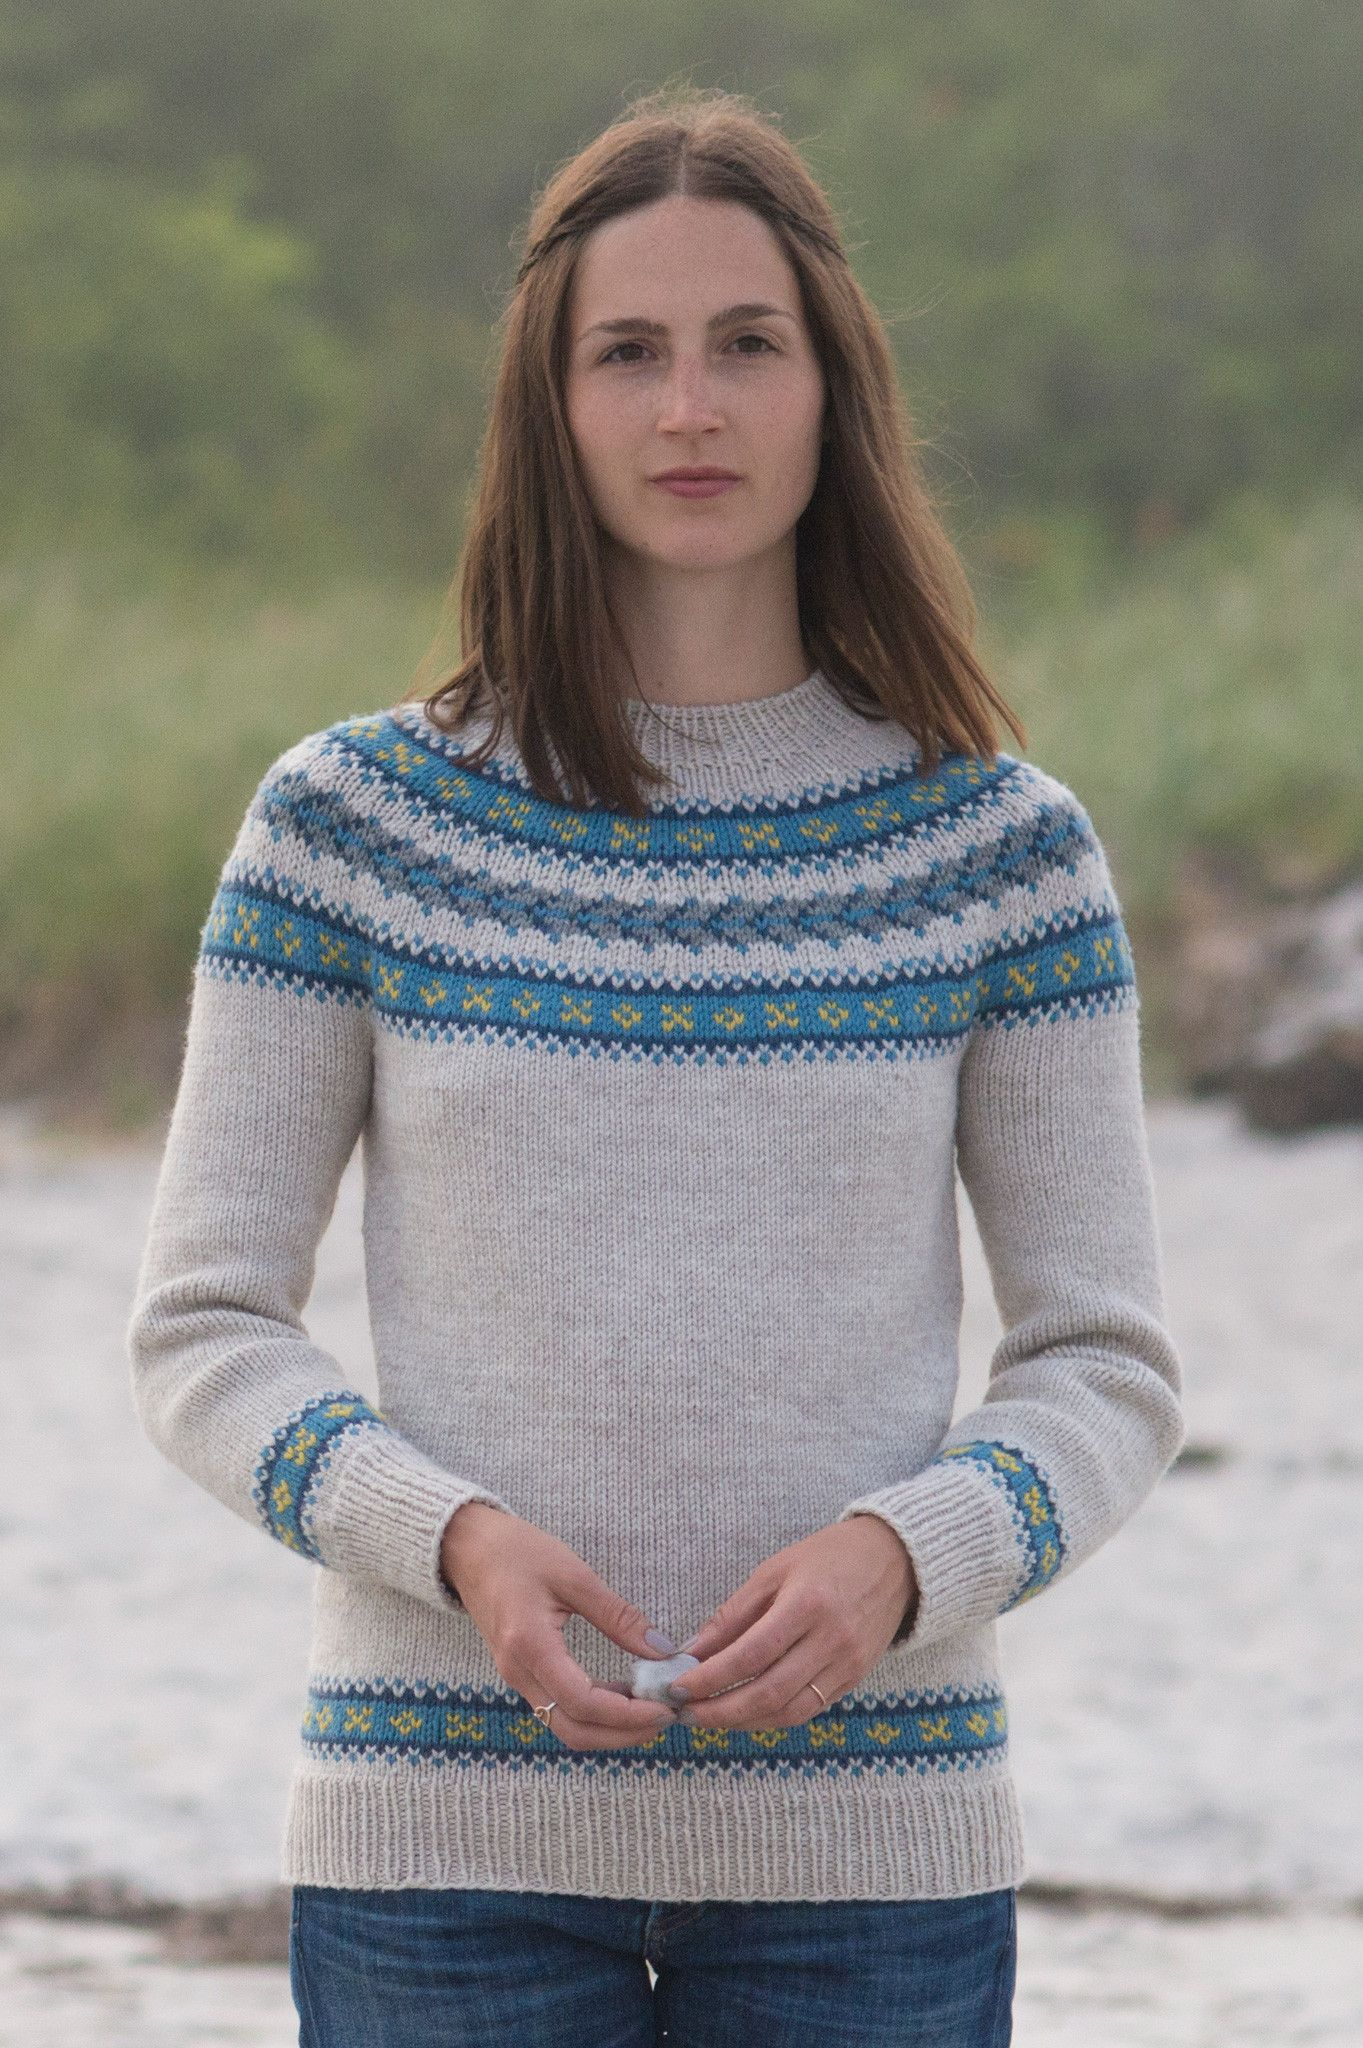 Dalis pullover by dianna walla from the sea smoke collection in dalis pullover by dianna walla from the sea smoke collection in quince co sweater knitting patternsknitting dt1010fo